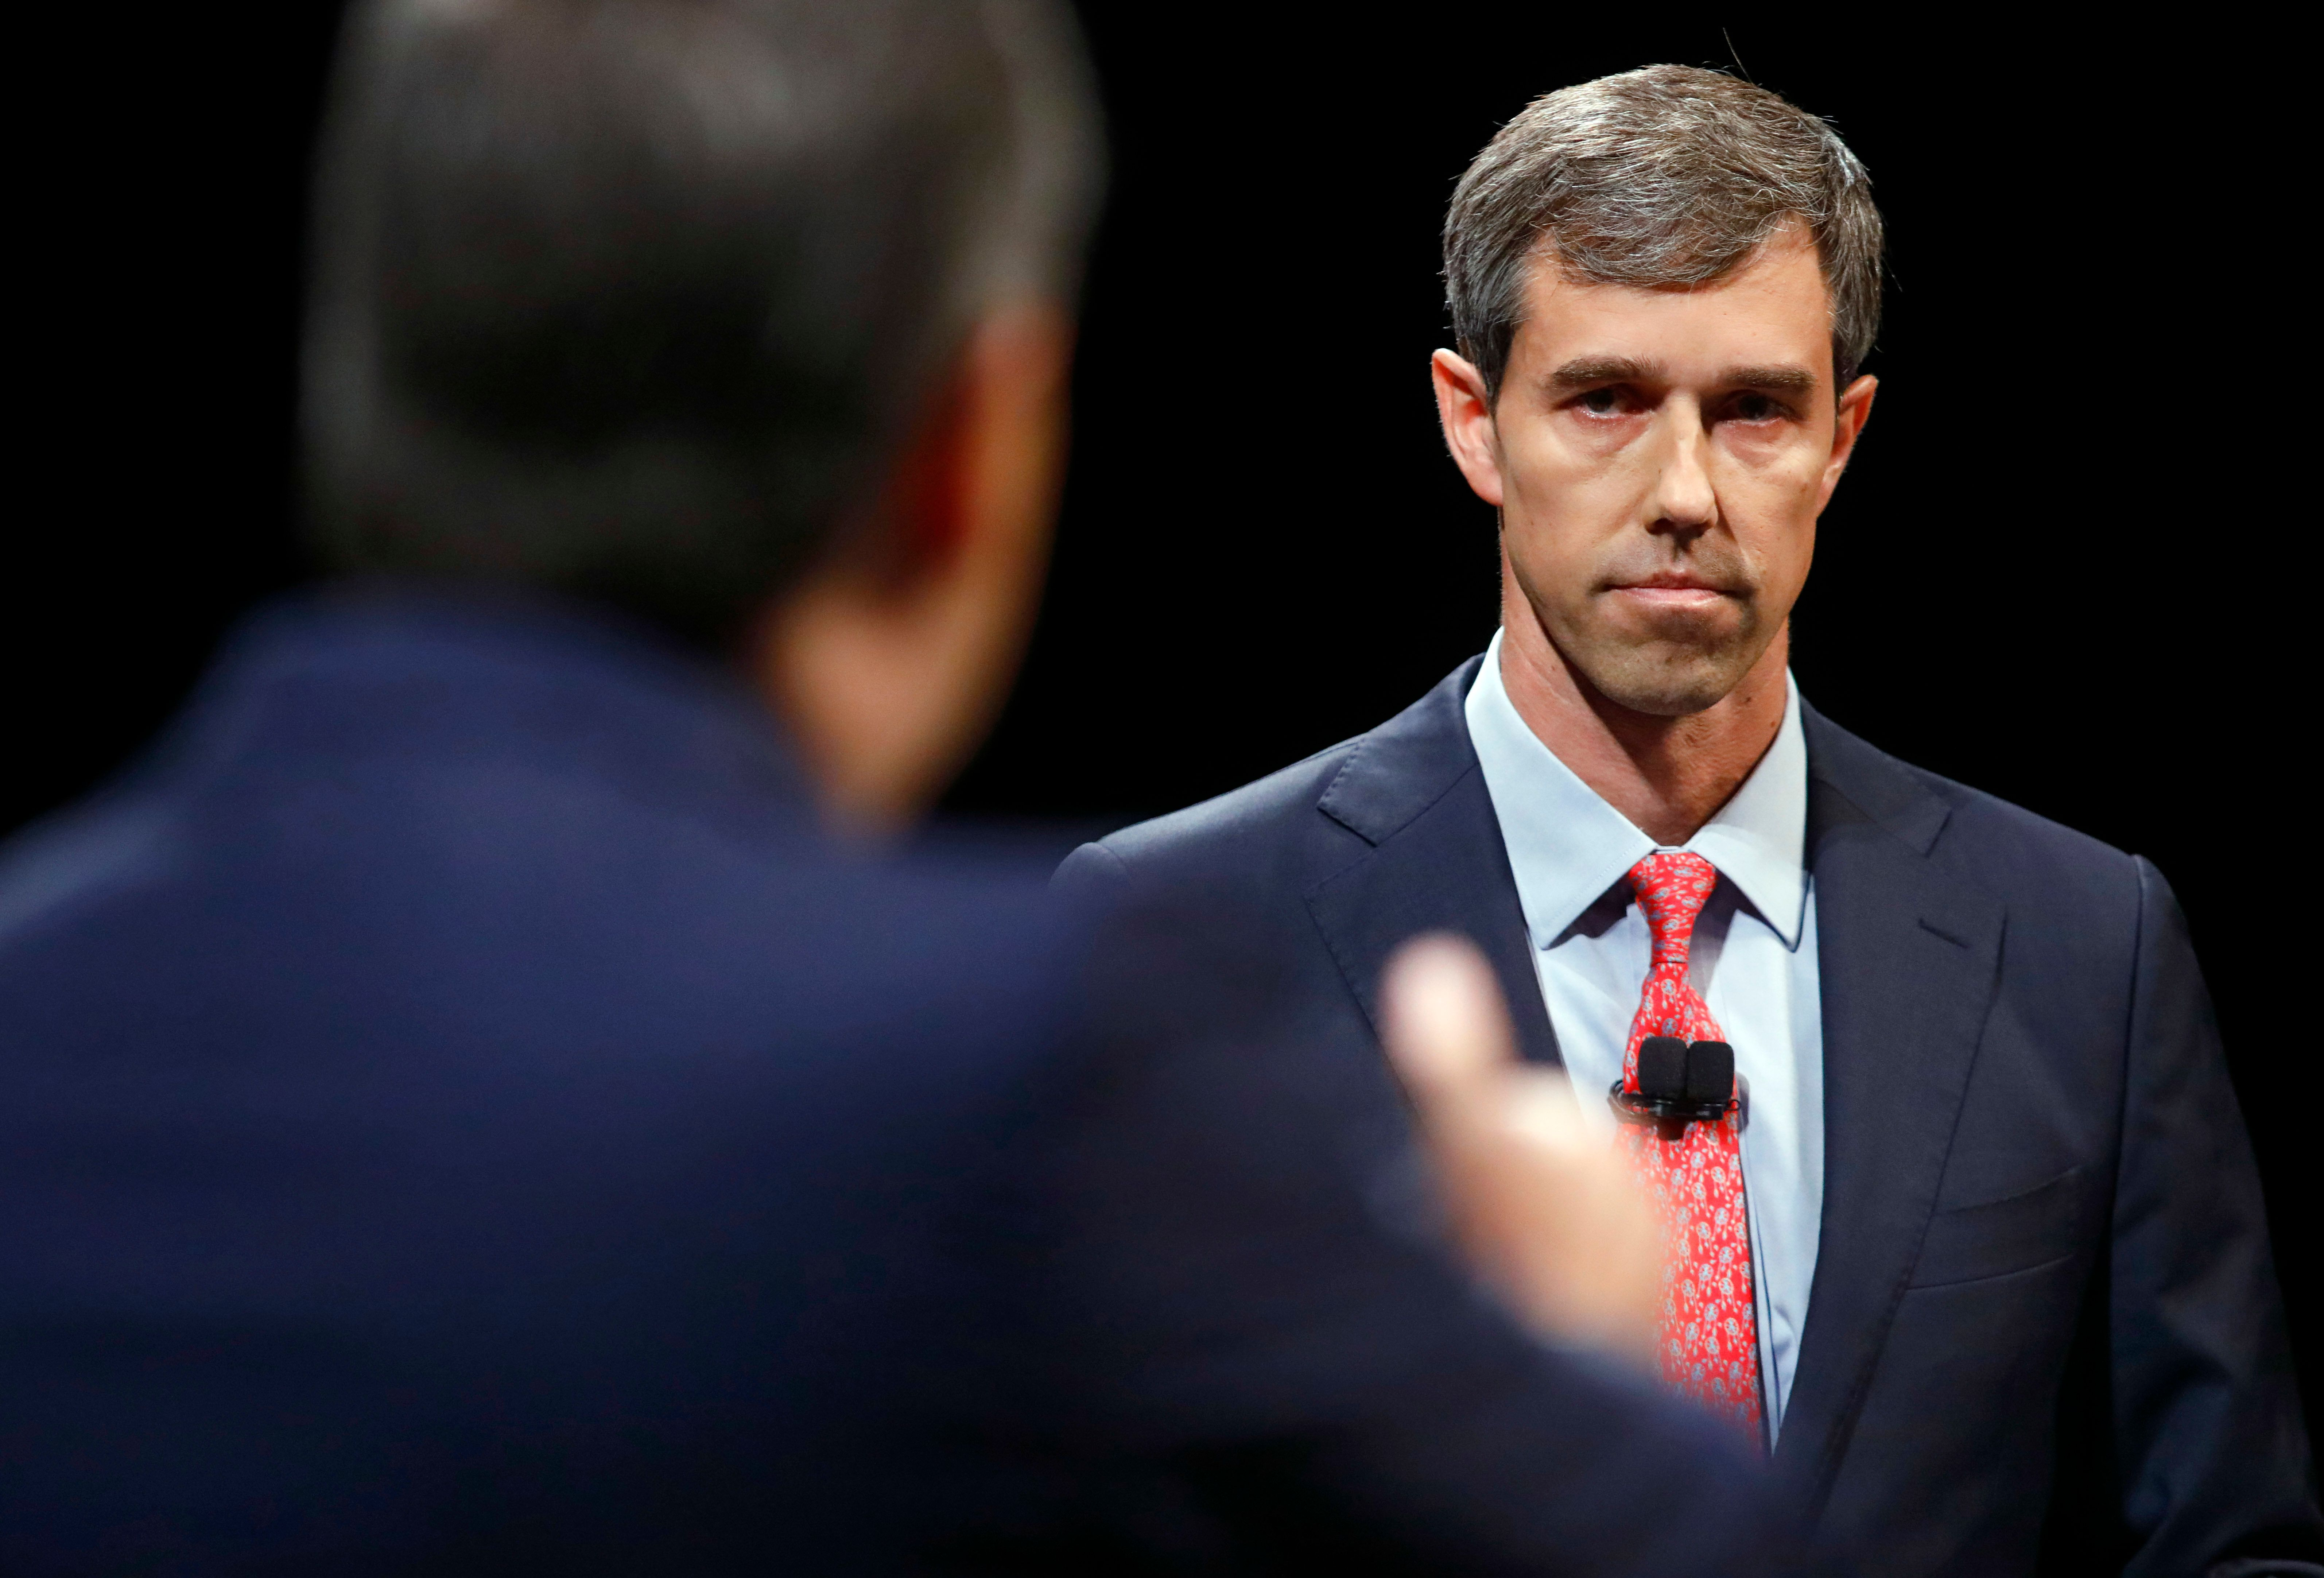 DALLAS, TX - SEPTEMBER 21: Rep. Beto O'Rourke (D-TX) looks and listens to Sen. Ted Cruz (R-TX) during a debate at McFarlin Auditorium at SMU on September 21, 2018 in Dallas, Texas. (Photo by Tom Fox-Pool/Getty Images)